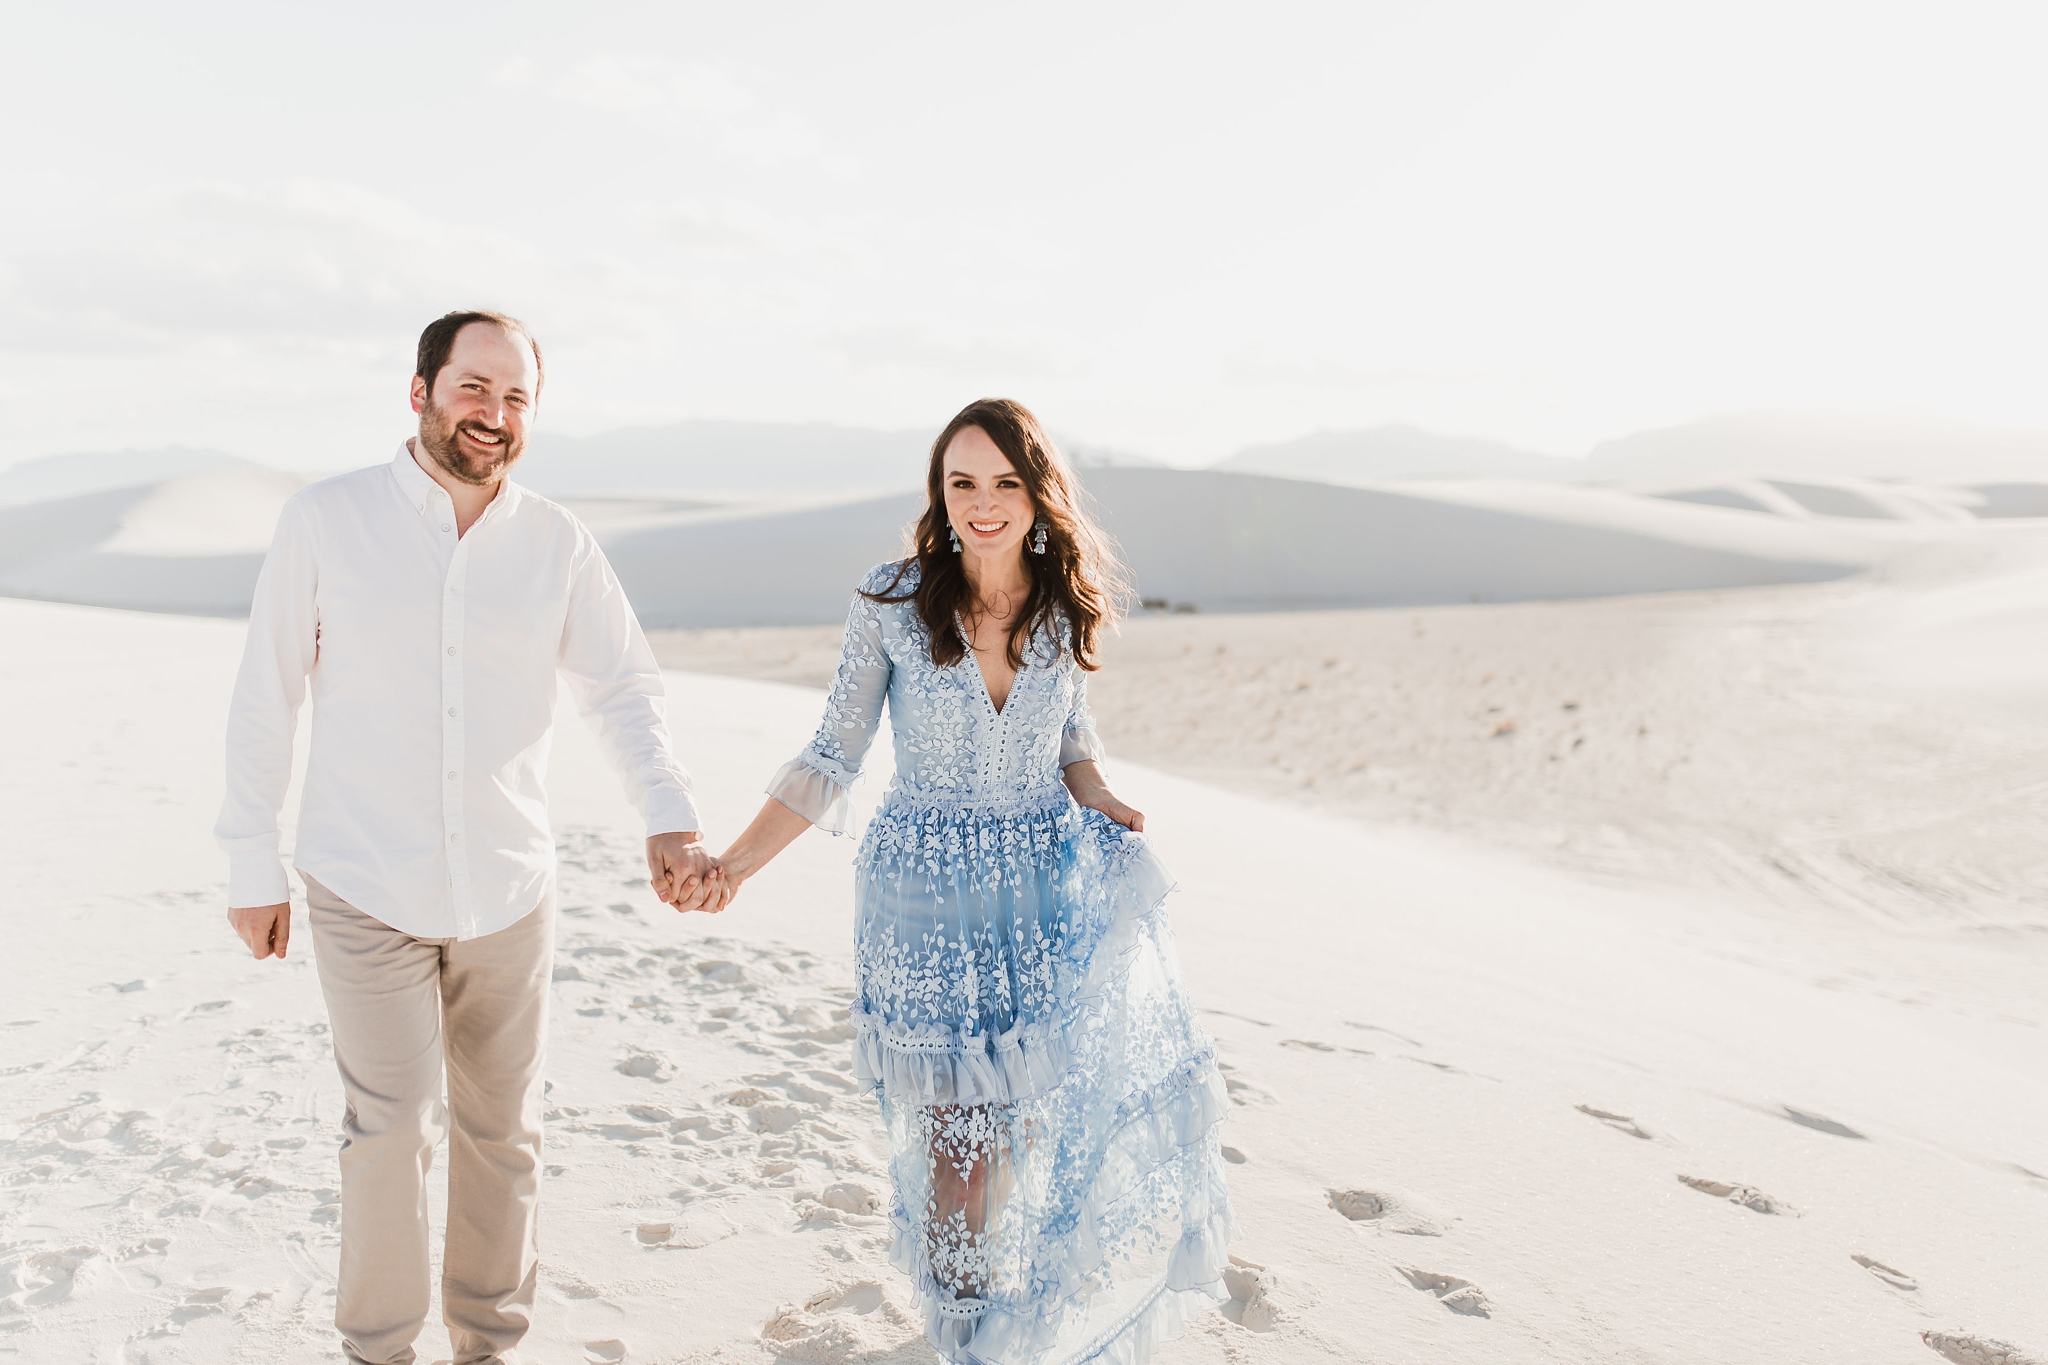 Alicia+lucia+photography+-+albuquerque+wedding+photographer+-+santa+fe+wedding+photography+-+new+mexico+wedding+photographer+-+new+mexico+wedding+-+new+mexico+engagement+-+white+sands+engagement+-+white+sands+national+monument_0004.jpg